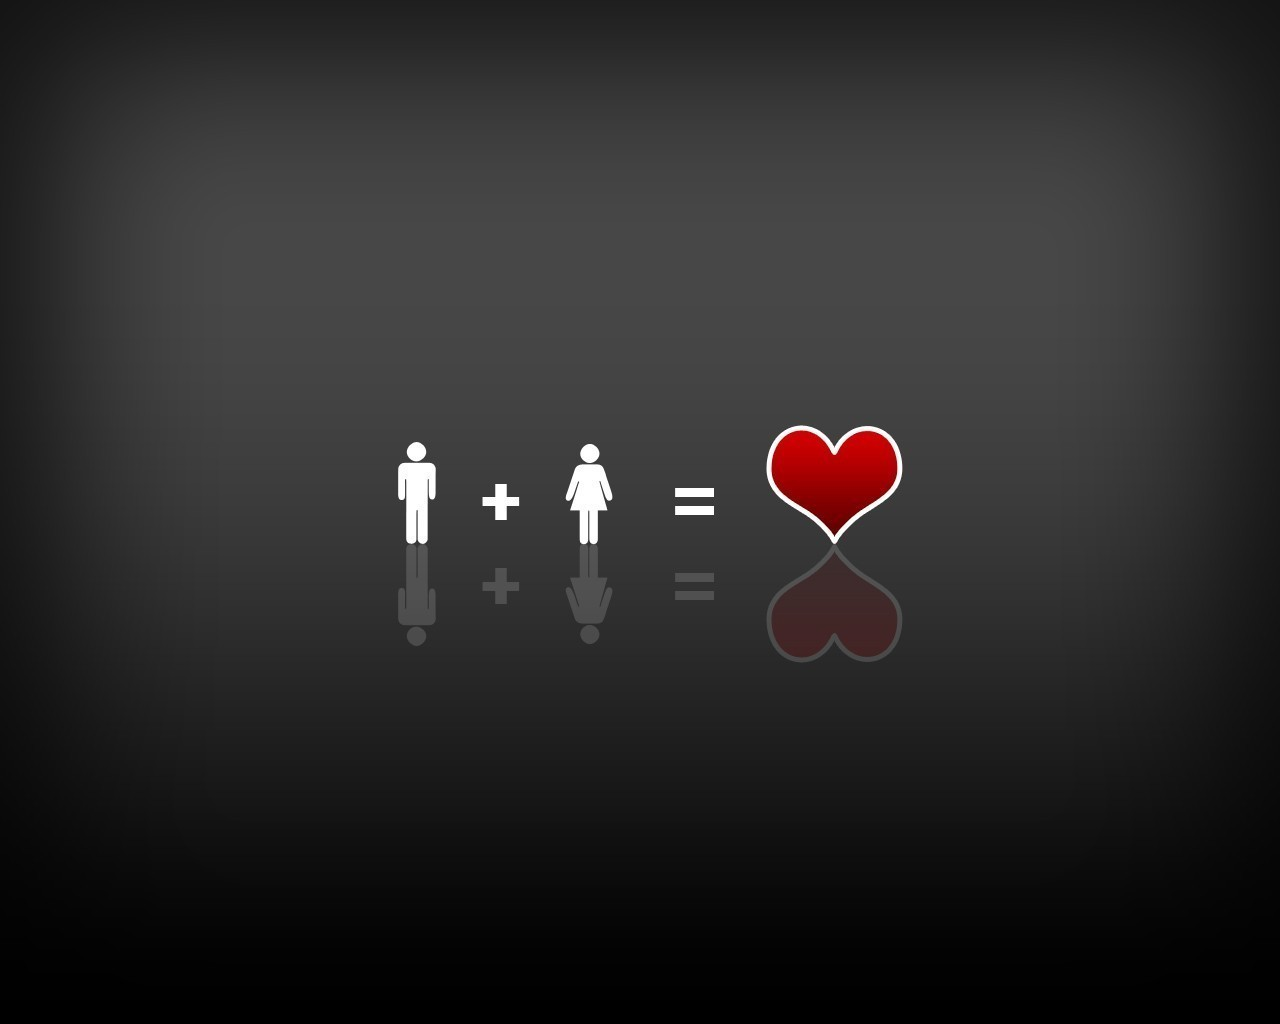 Male + Female = Love